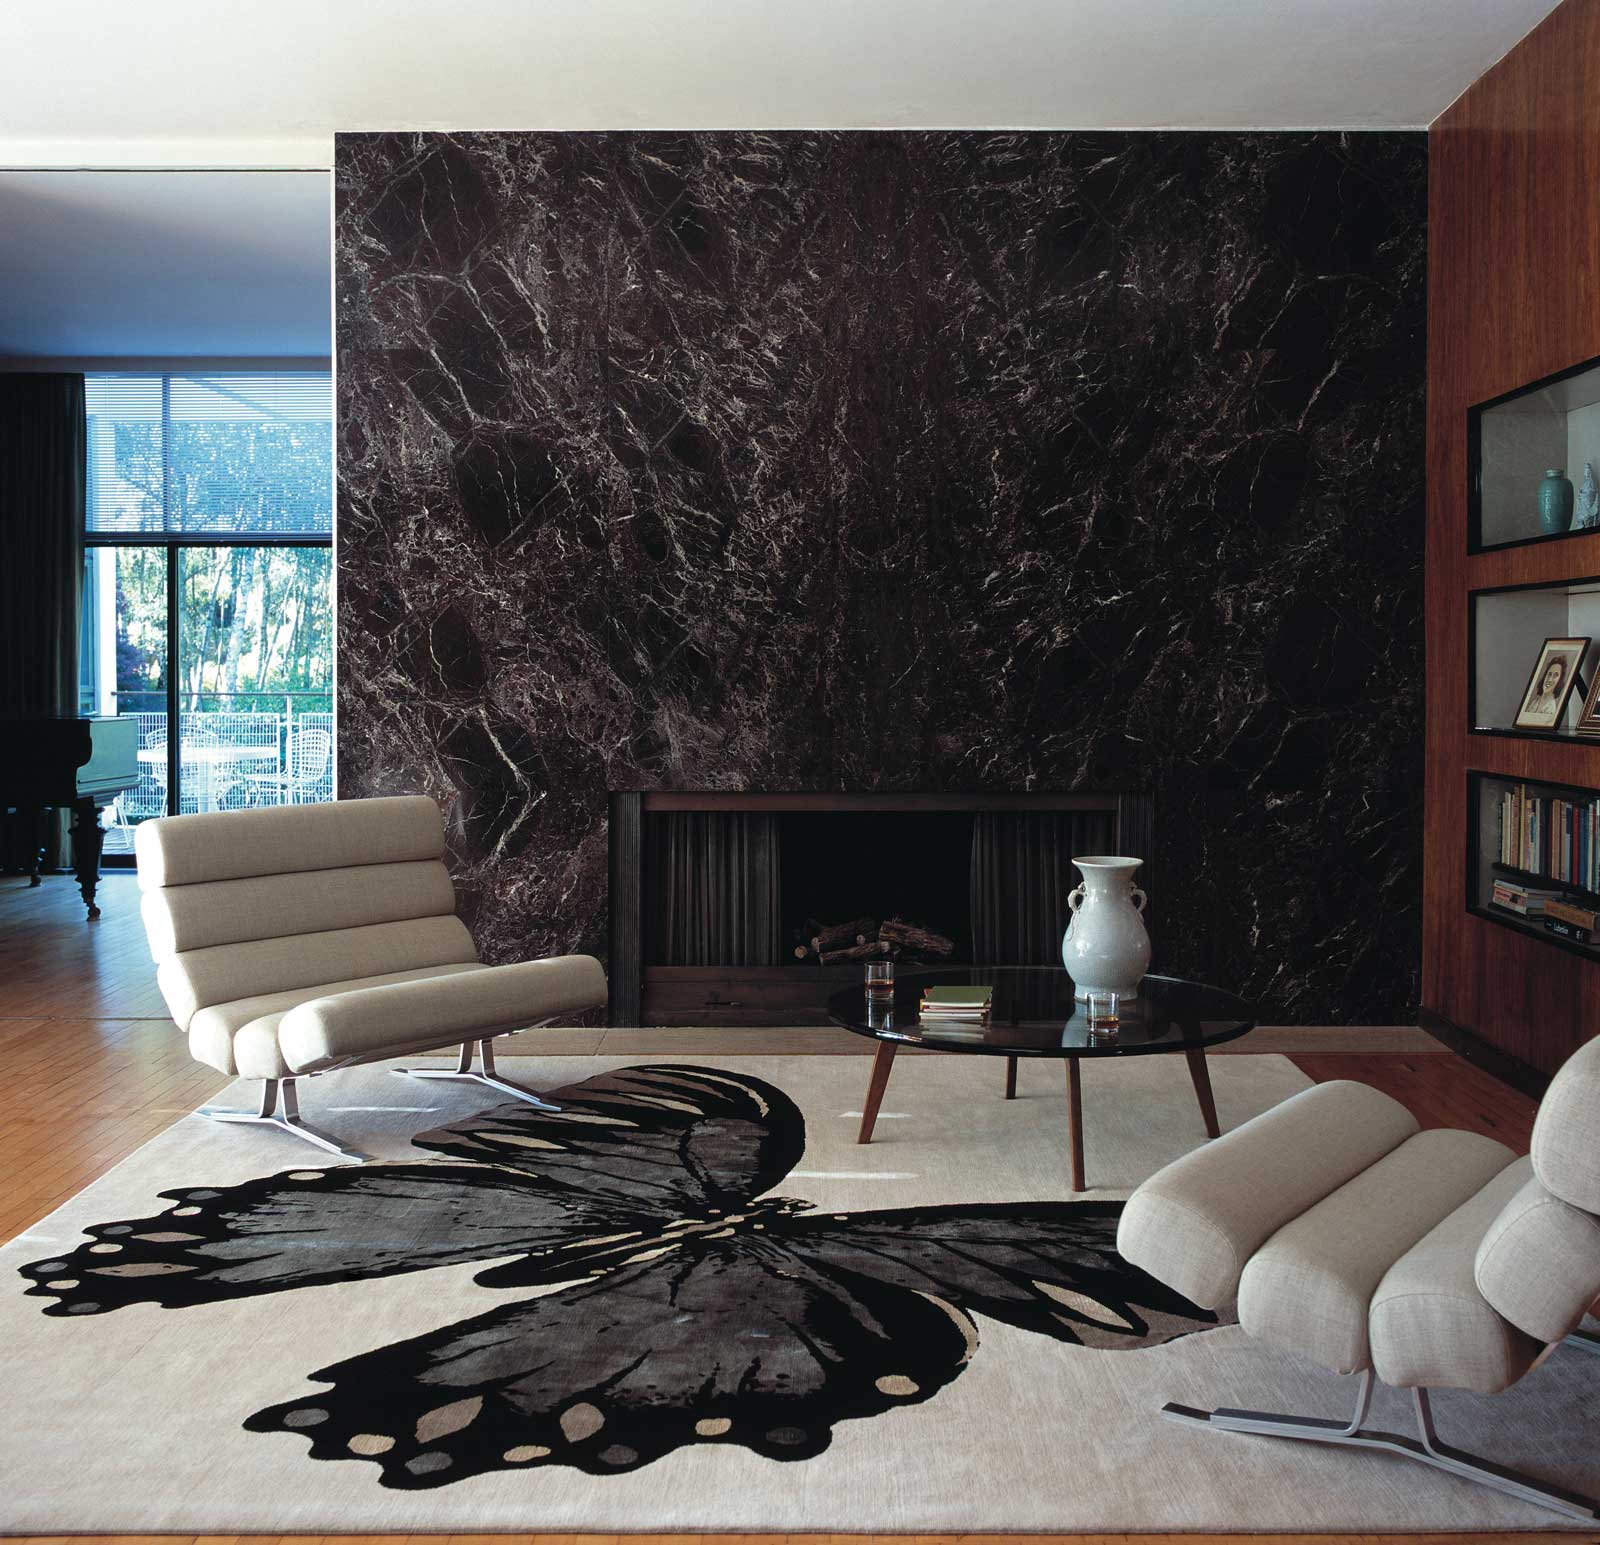 rug company belvedere. Black Bedroom Furniture Sets. Home Design Ideas